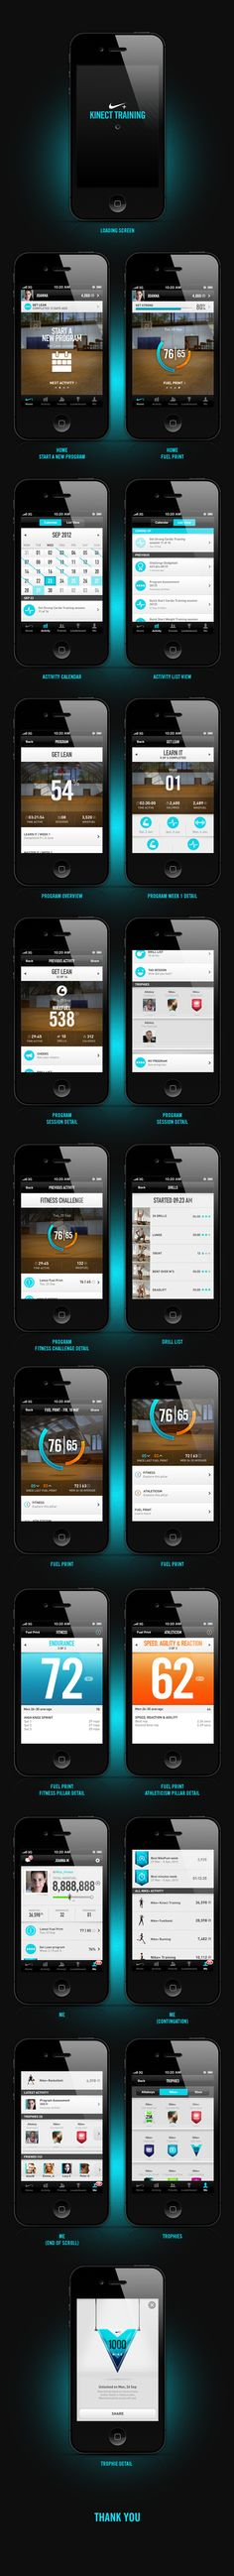 #Nike+ Kinect Training #iphone #app by João Planche, via #Behance #Mobile #ui